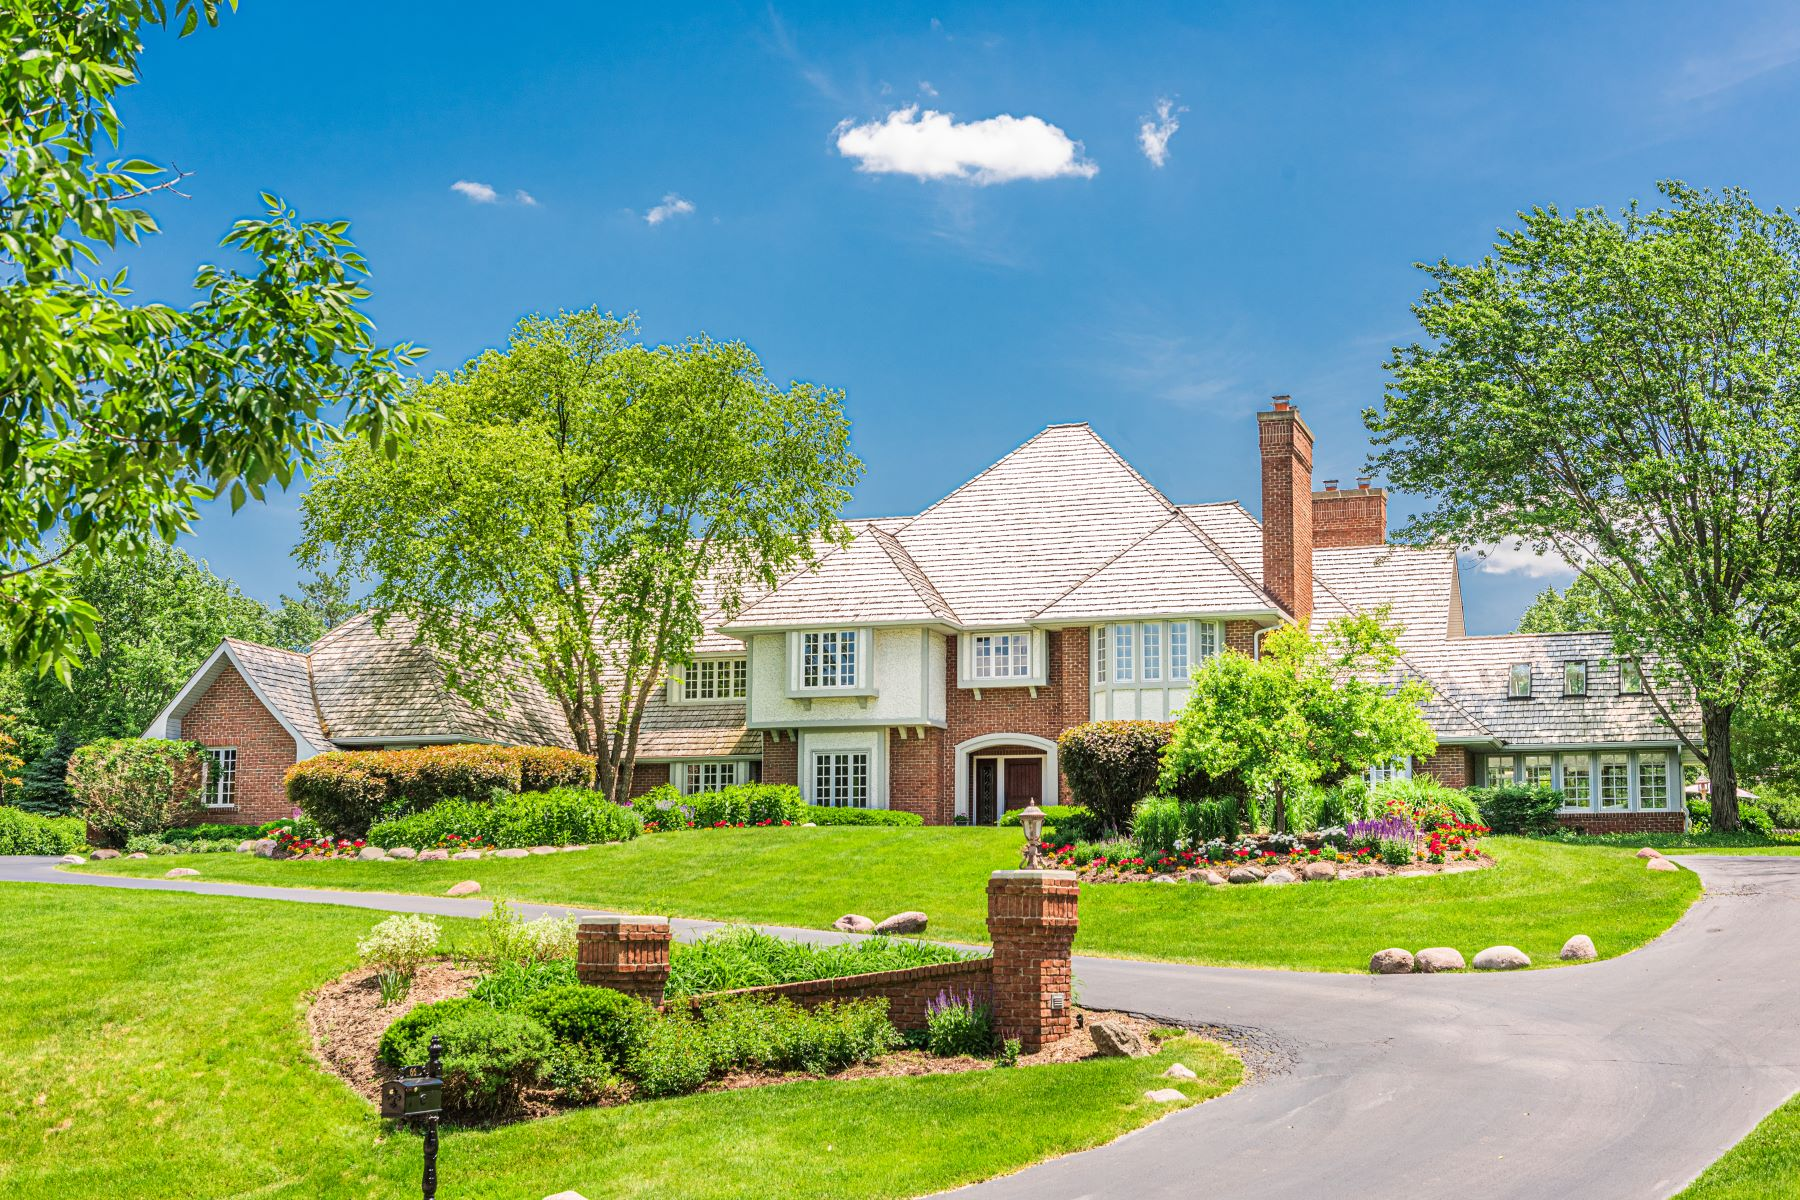 Single Family Homes for Sale at Stunning Home 66 Coventry Lane North Barrington, Illinois 60010 United States